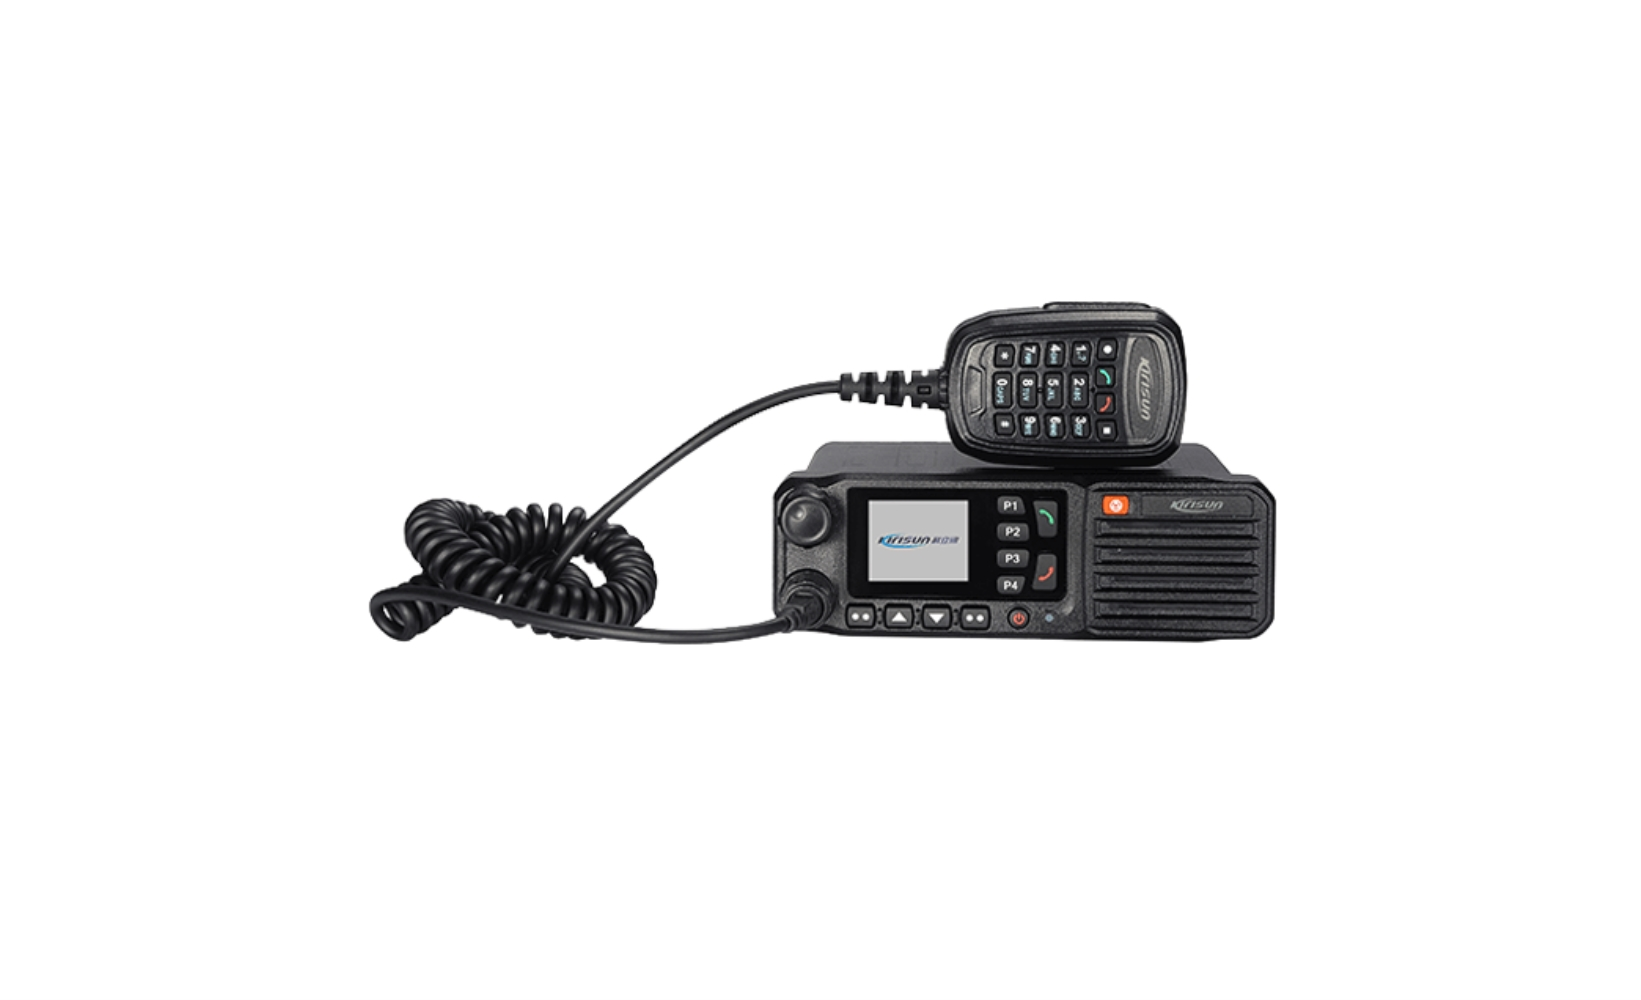 photo of Kirisun TM-840-GPS-UHF-25 - 1024 Channel, 25 Watt, UHF Mobile Radio